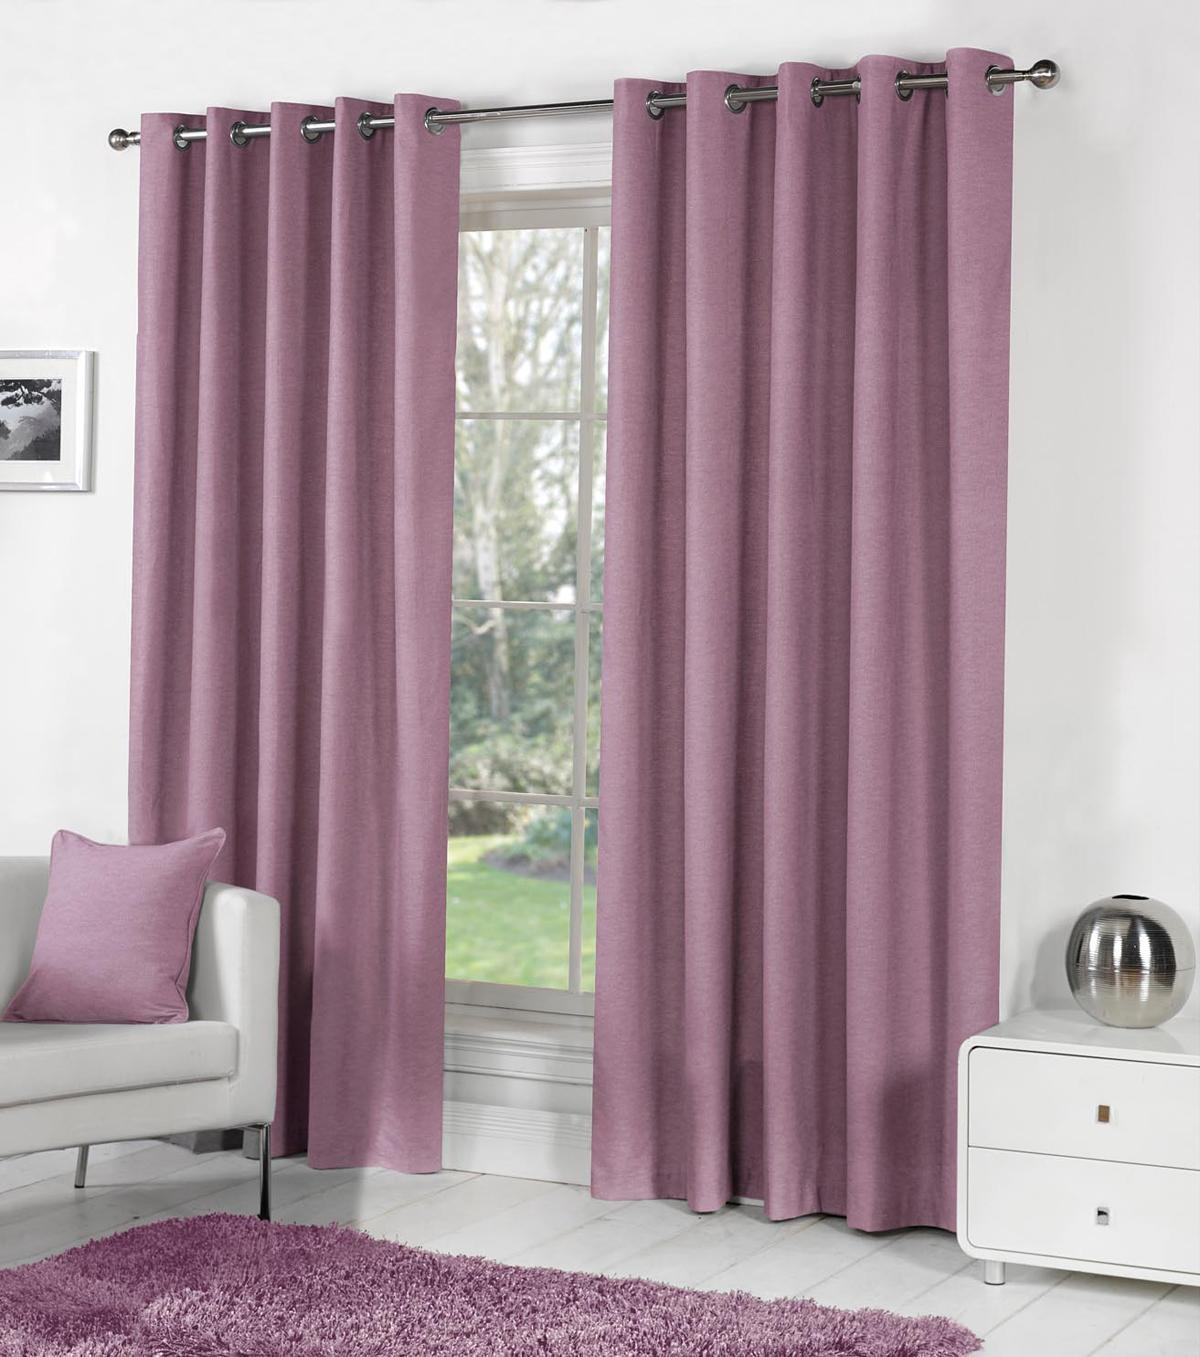 46 90 Curtains Cheap Window Curtains Available Terrys Fabrics With Ready Made Curtains For Large Bay Windows (View 14 of 15)